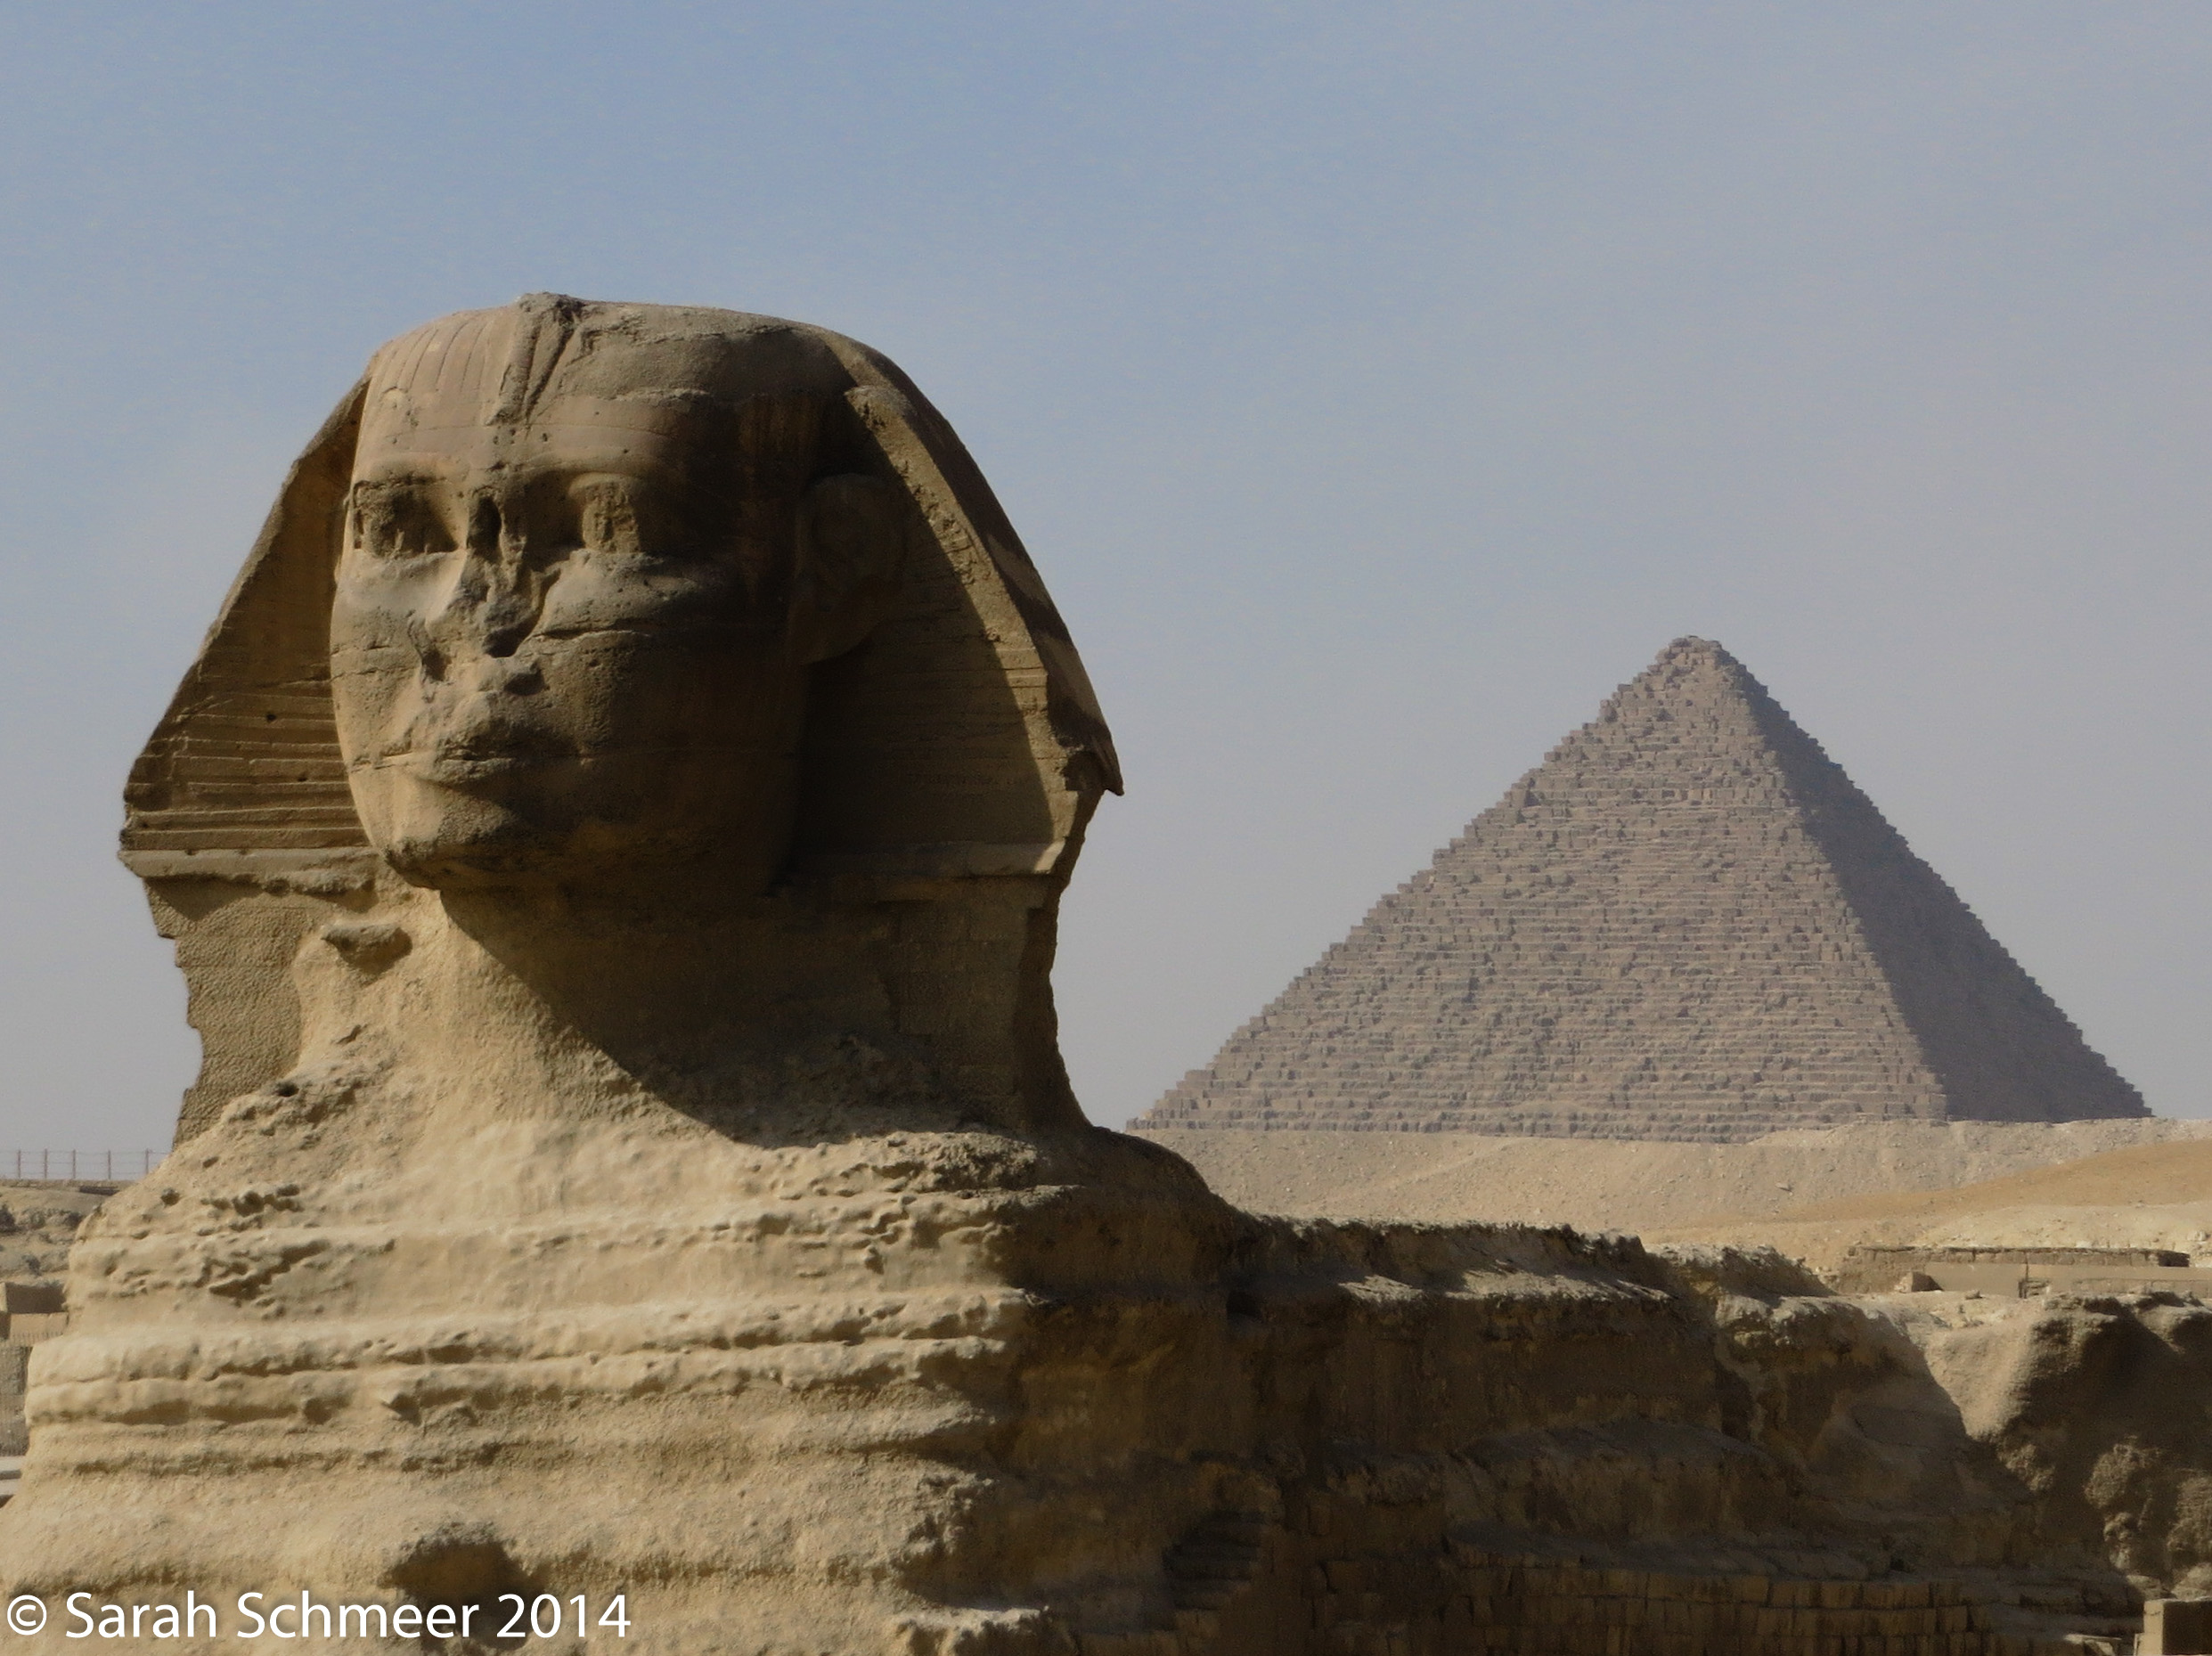 The amazing Sphinx and awesome pyramids of Giza--a lifelong dream fulfilled!